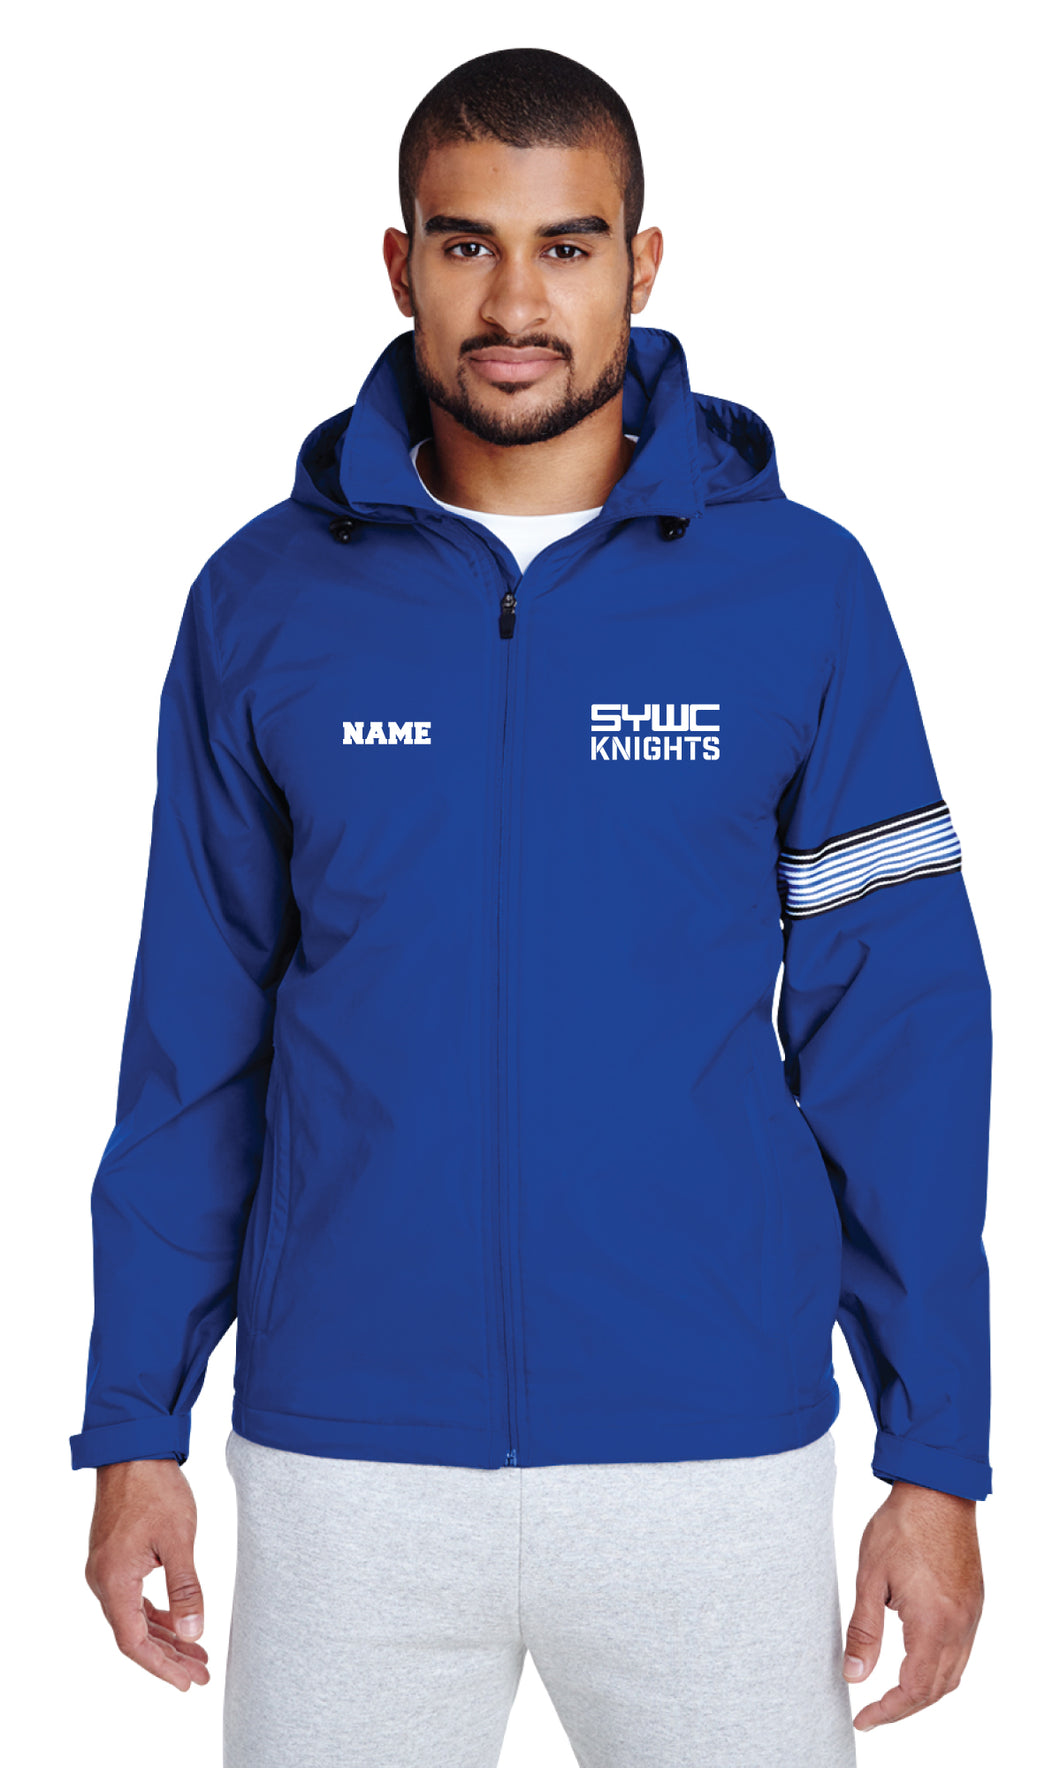 SYWC All Season Hooded Men's Jacket - Royal - 5KounT2018